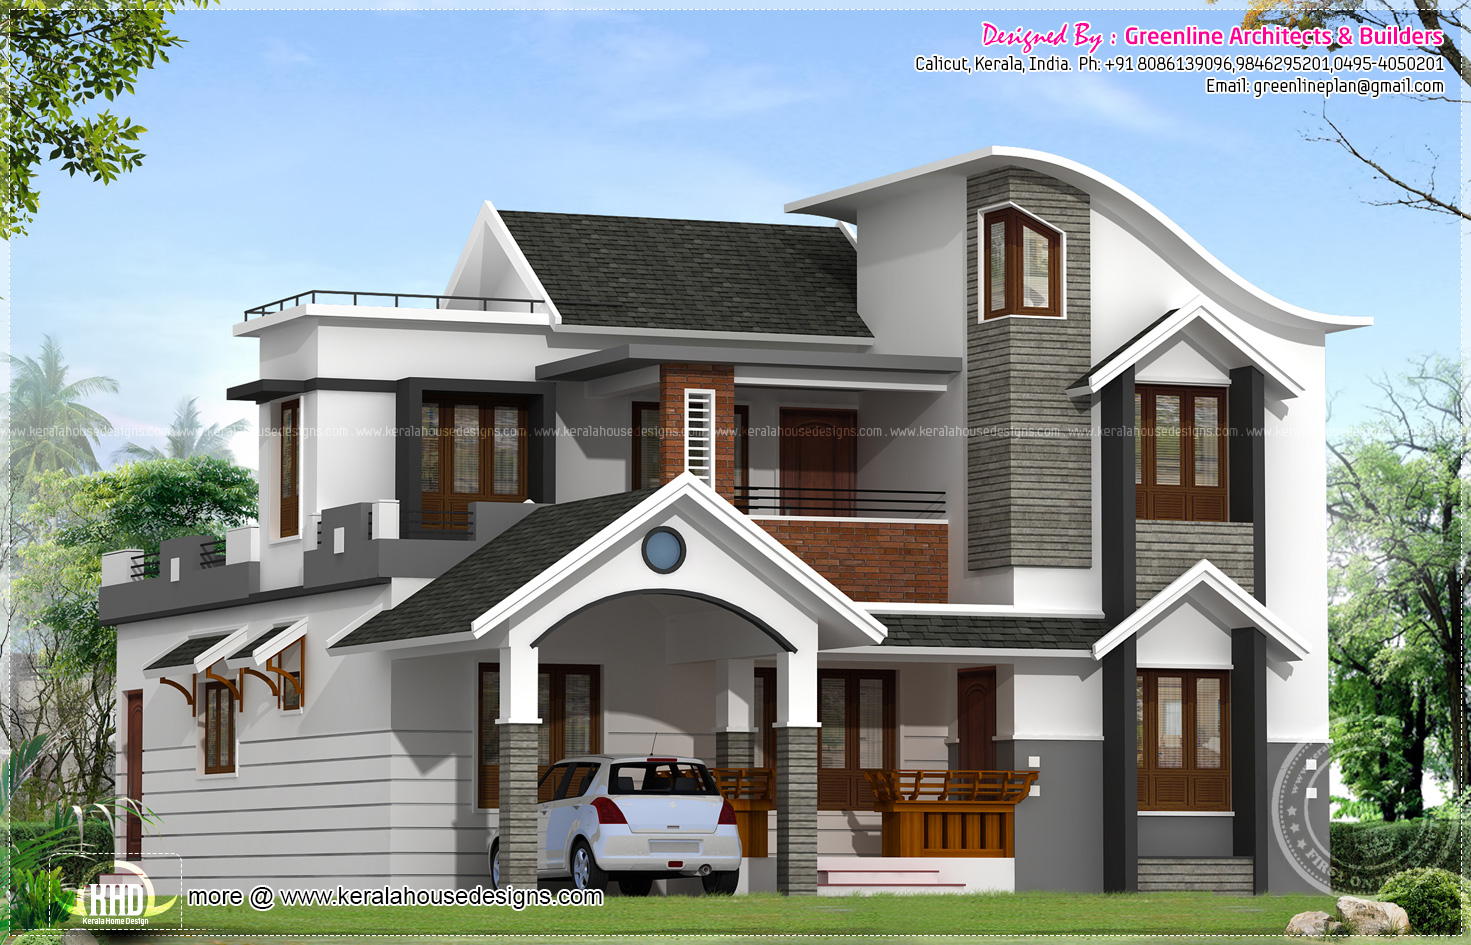 kerala house plans 2014 modern house architecture in kerala house design plans